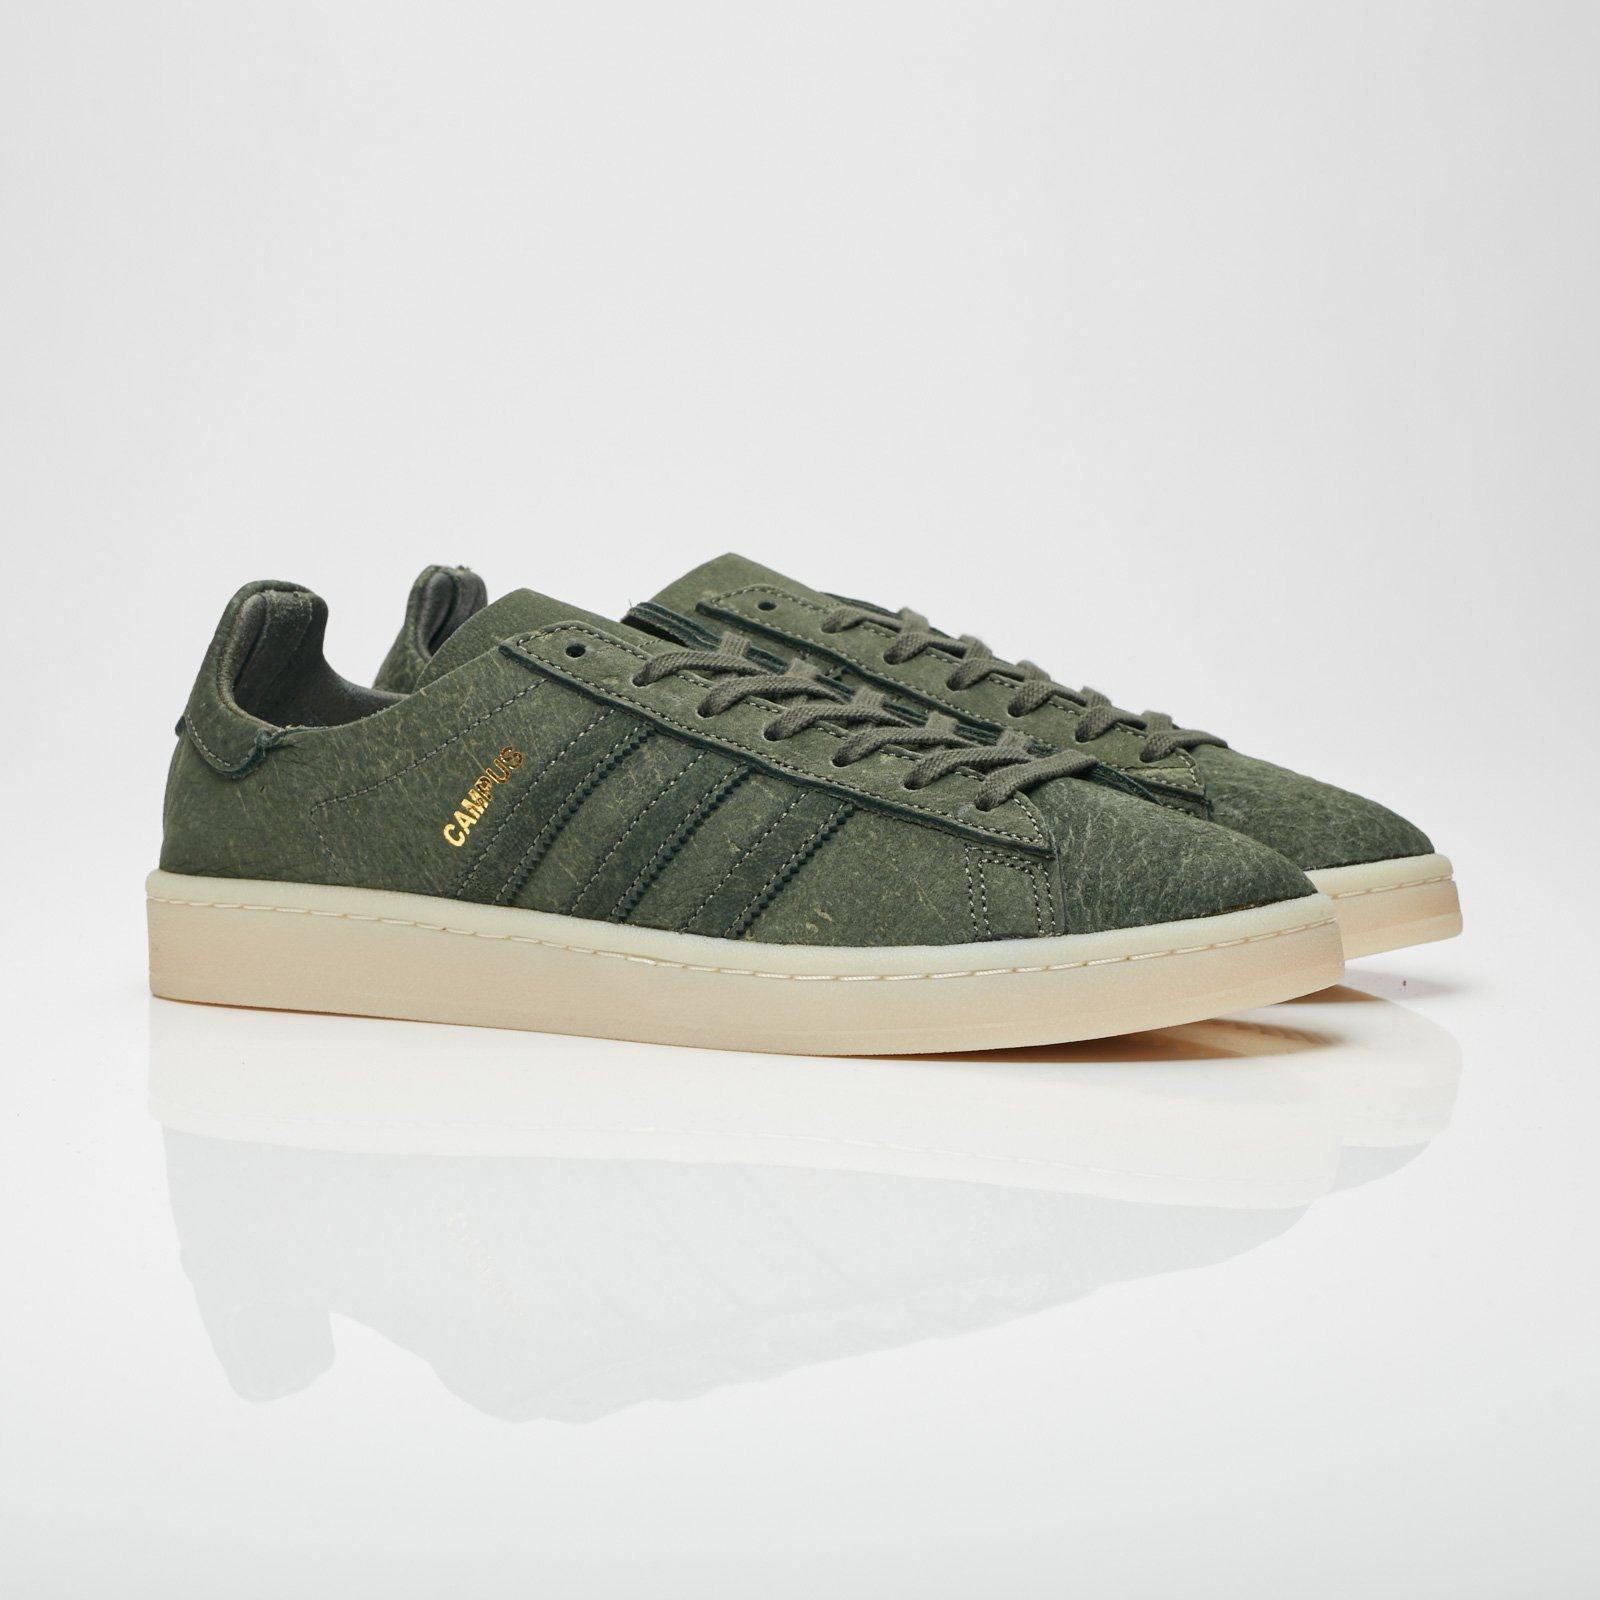 Adidas Campus Crafted Bw1249 Sneakersnstuff Sneakers